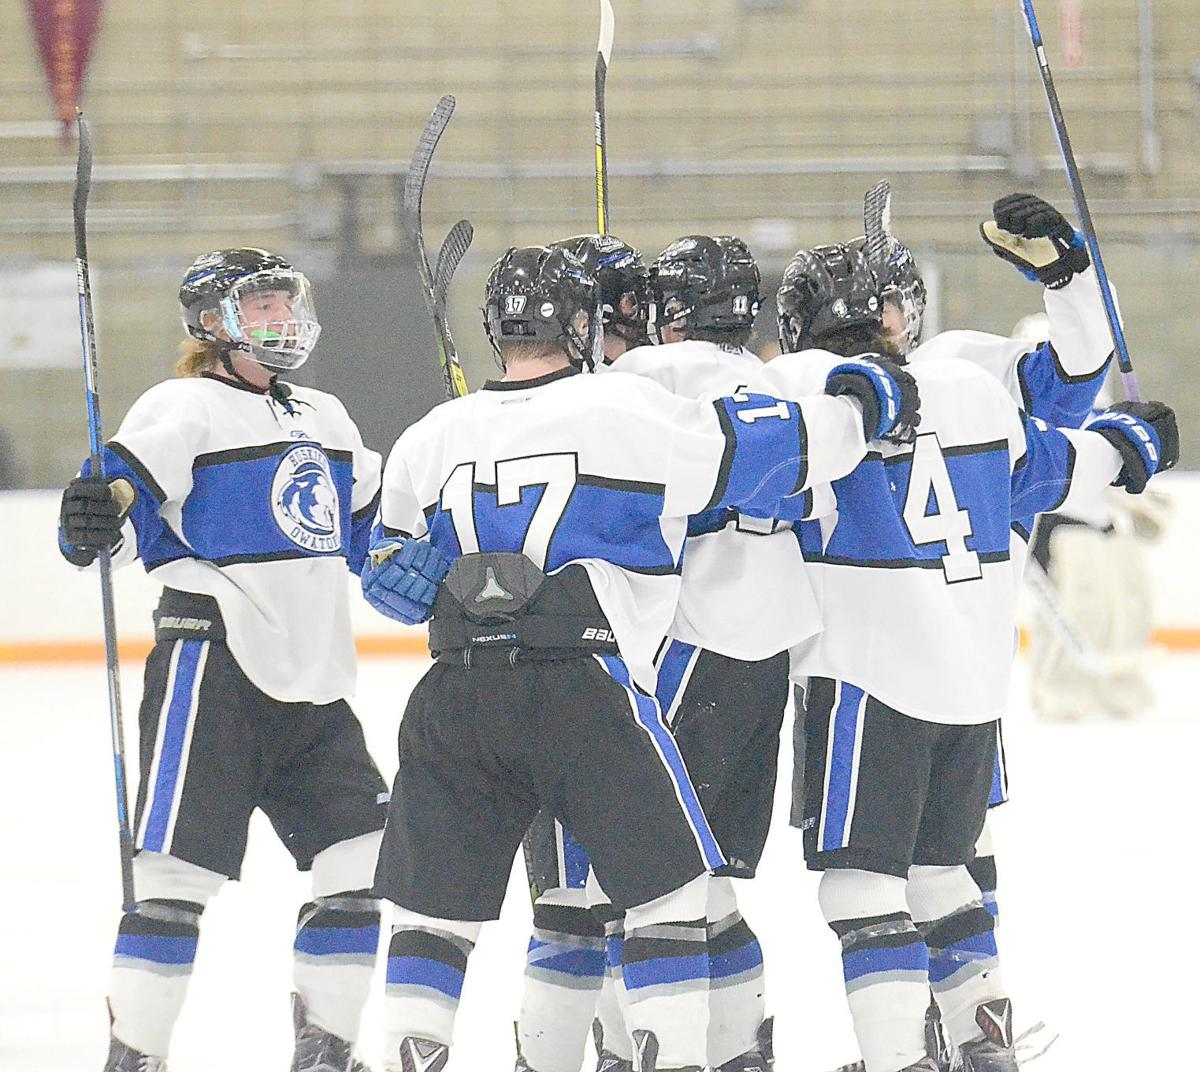 DRAMA ON ICE: Owatonna pulls off thrilling 3-2 victory over Farmington